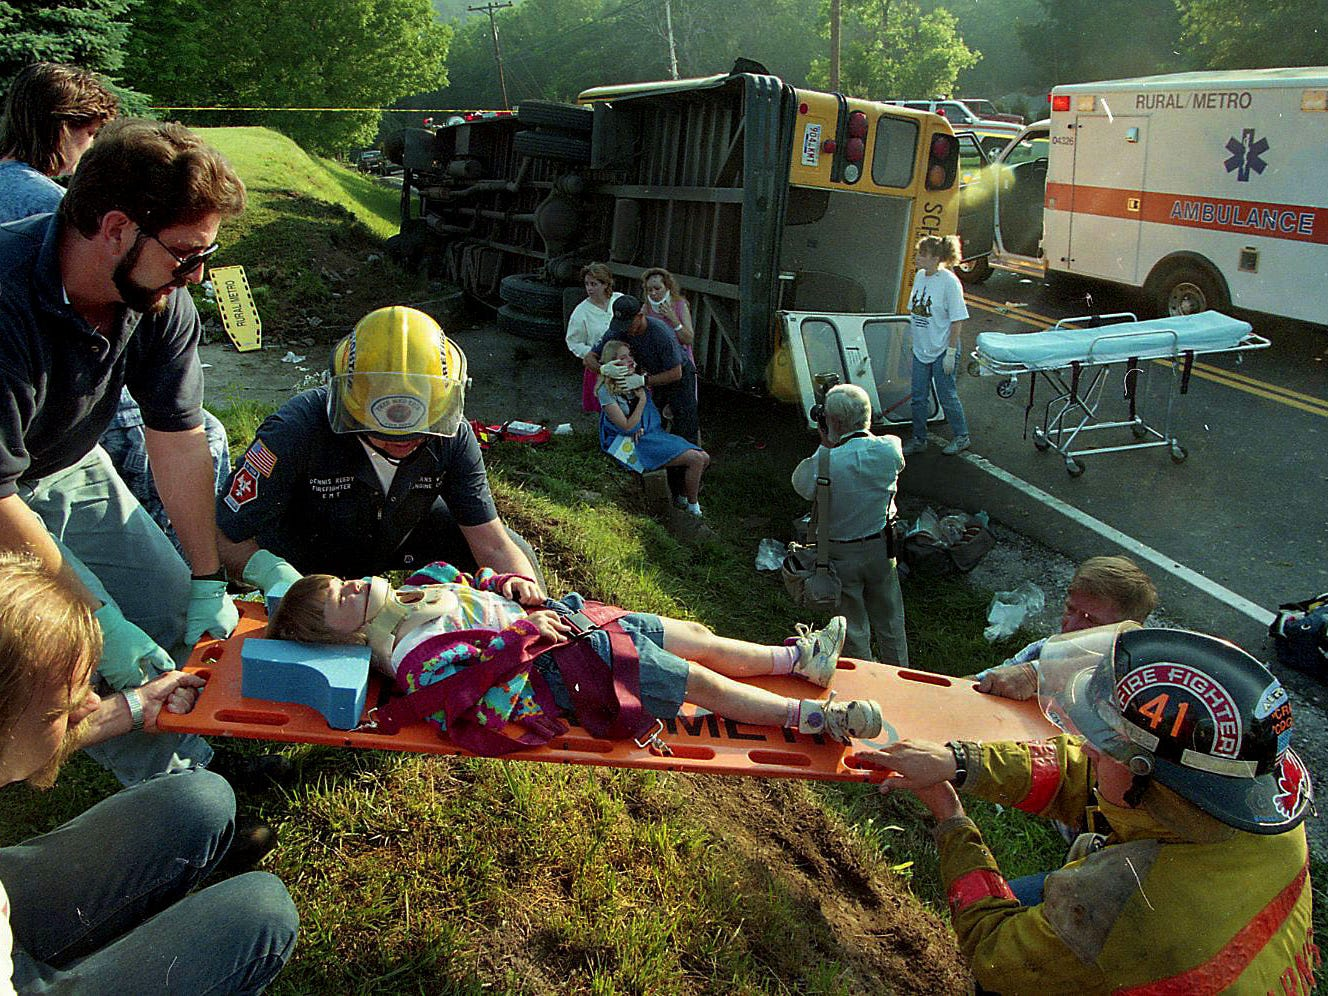 Rural/Metro emergency workers take one of the 25 injured students to a waiting ambulance after their bus overturned on Lovell Rd Tuesday, May 21, 1996.